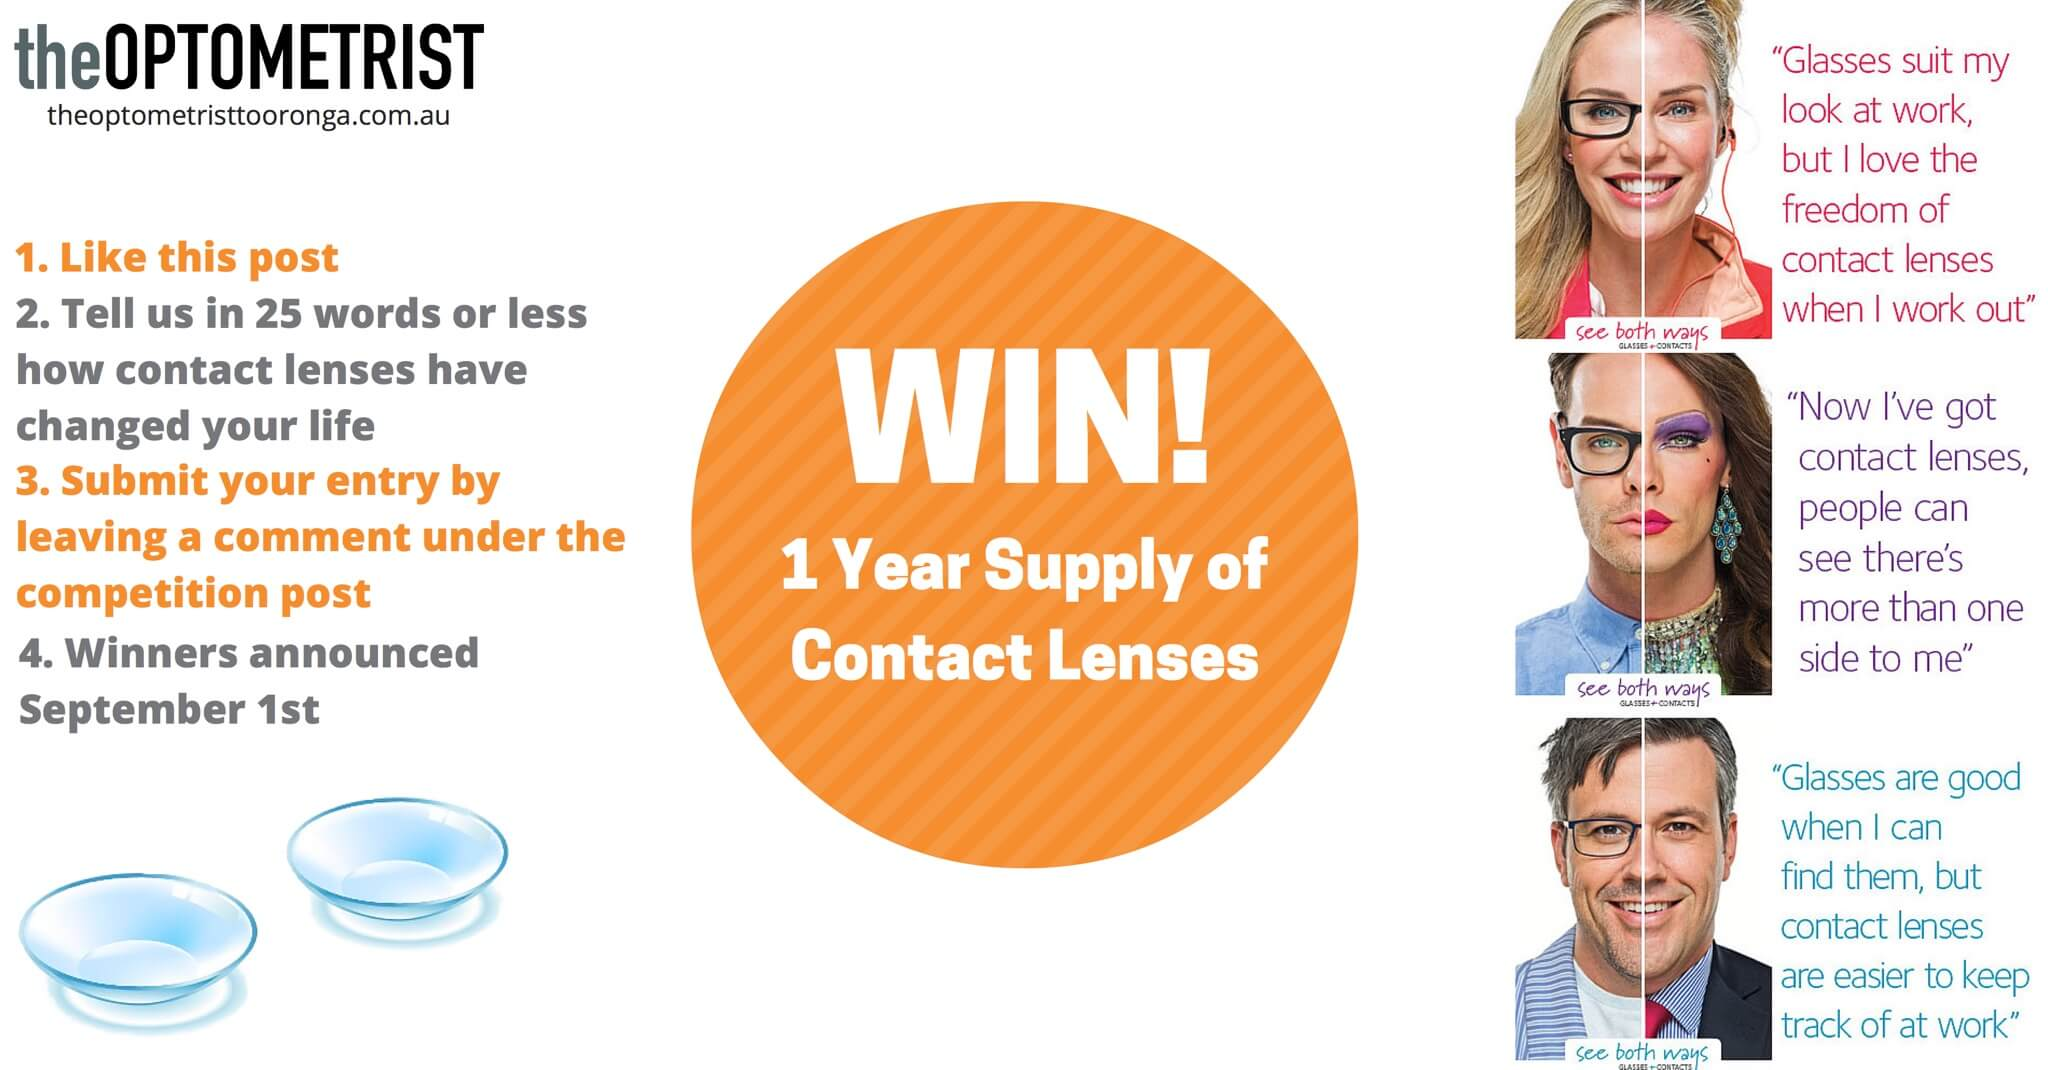 Win Free Contact Lenses - Facebook Competition